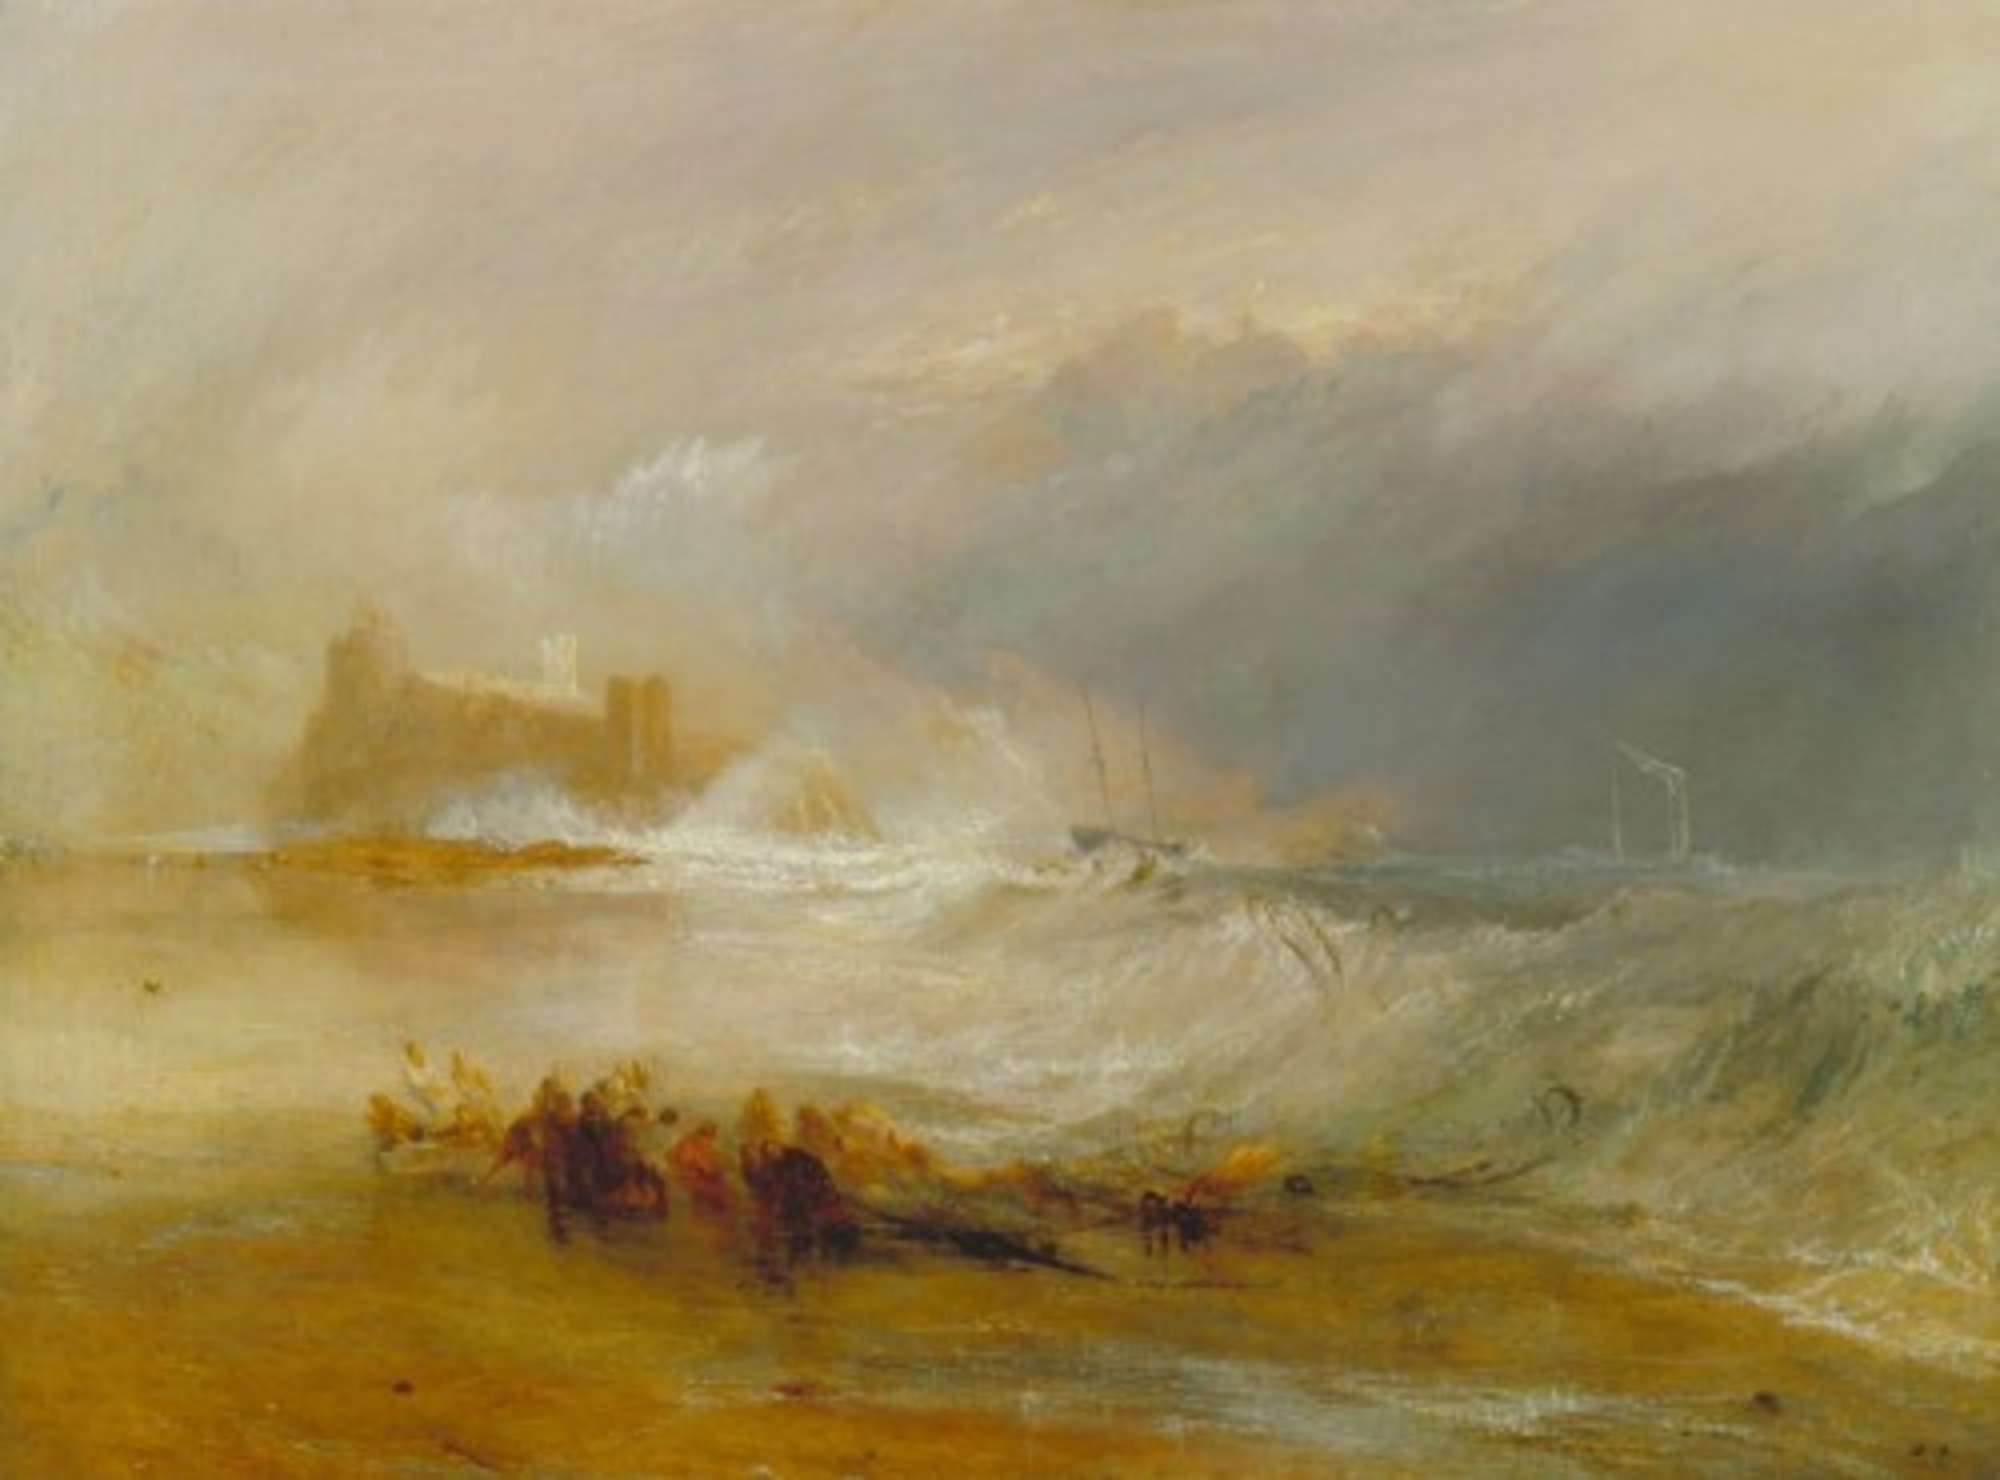 Wreckers---Coast-of-Northumberland-with-a-Steam-Boat-Assisting-a-Ship-Off-Shore-1834.jpg